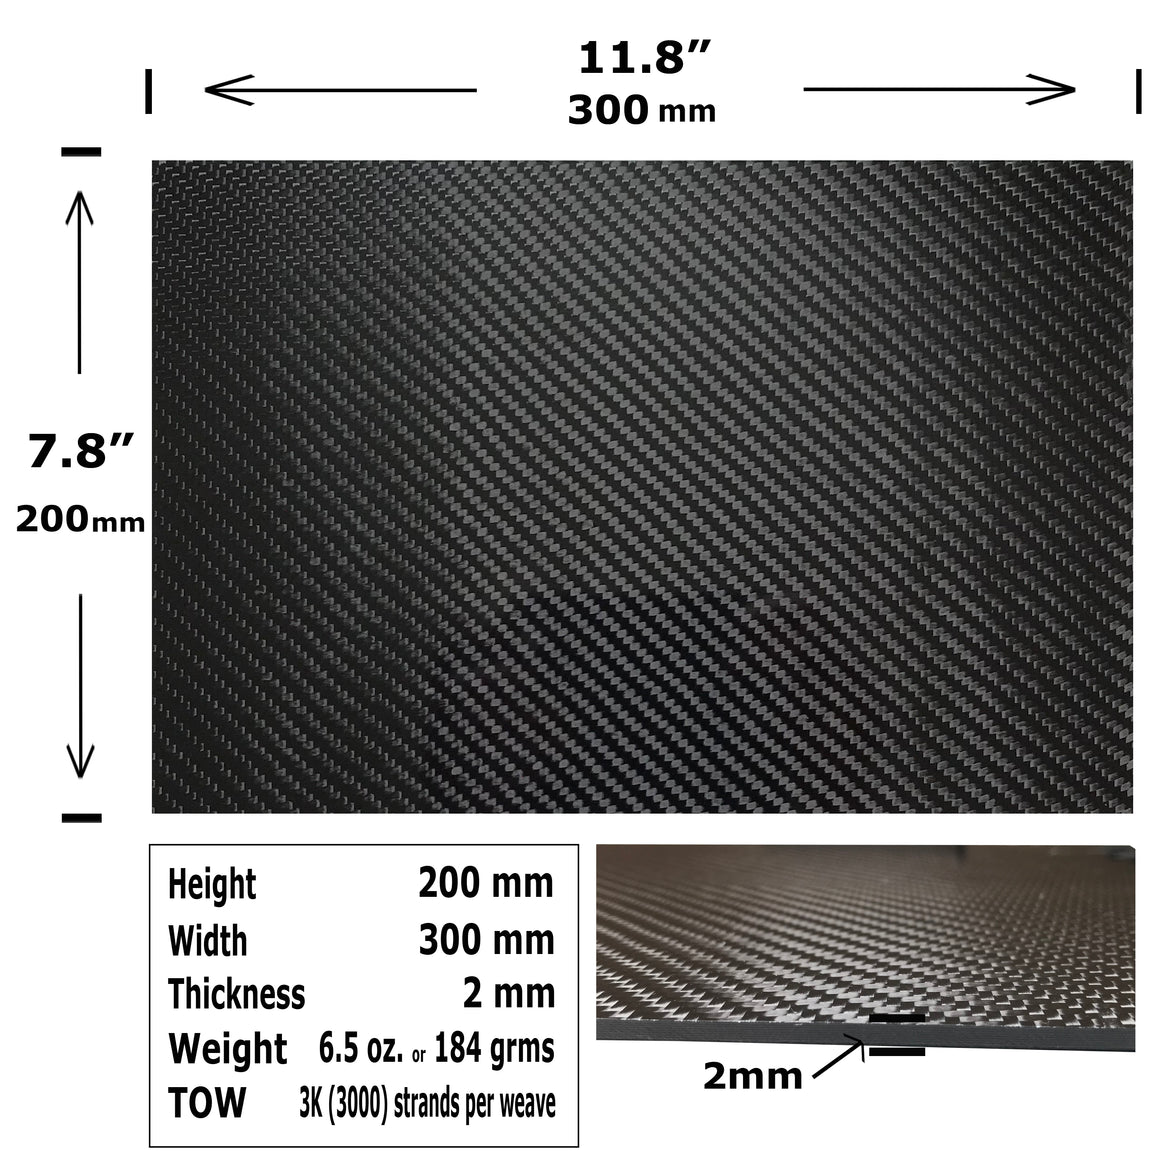 Carbon Fiber Plating  - 200mm x 300mm x 2mm - 3K Carbon Fiber Plate High Gloss Finish